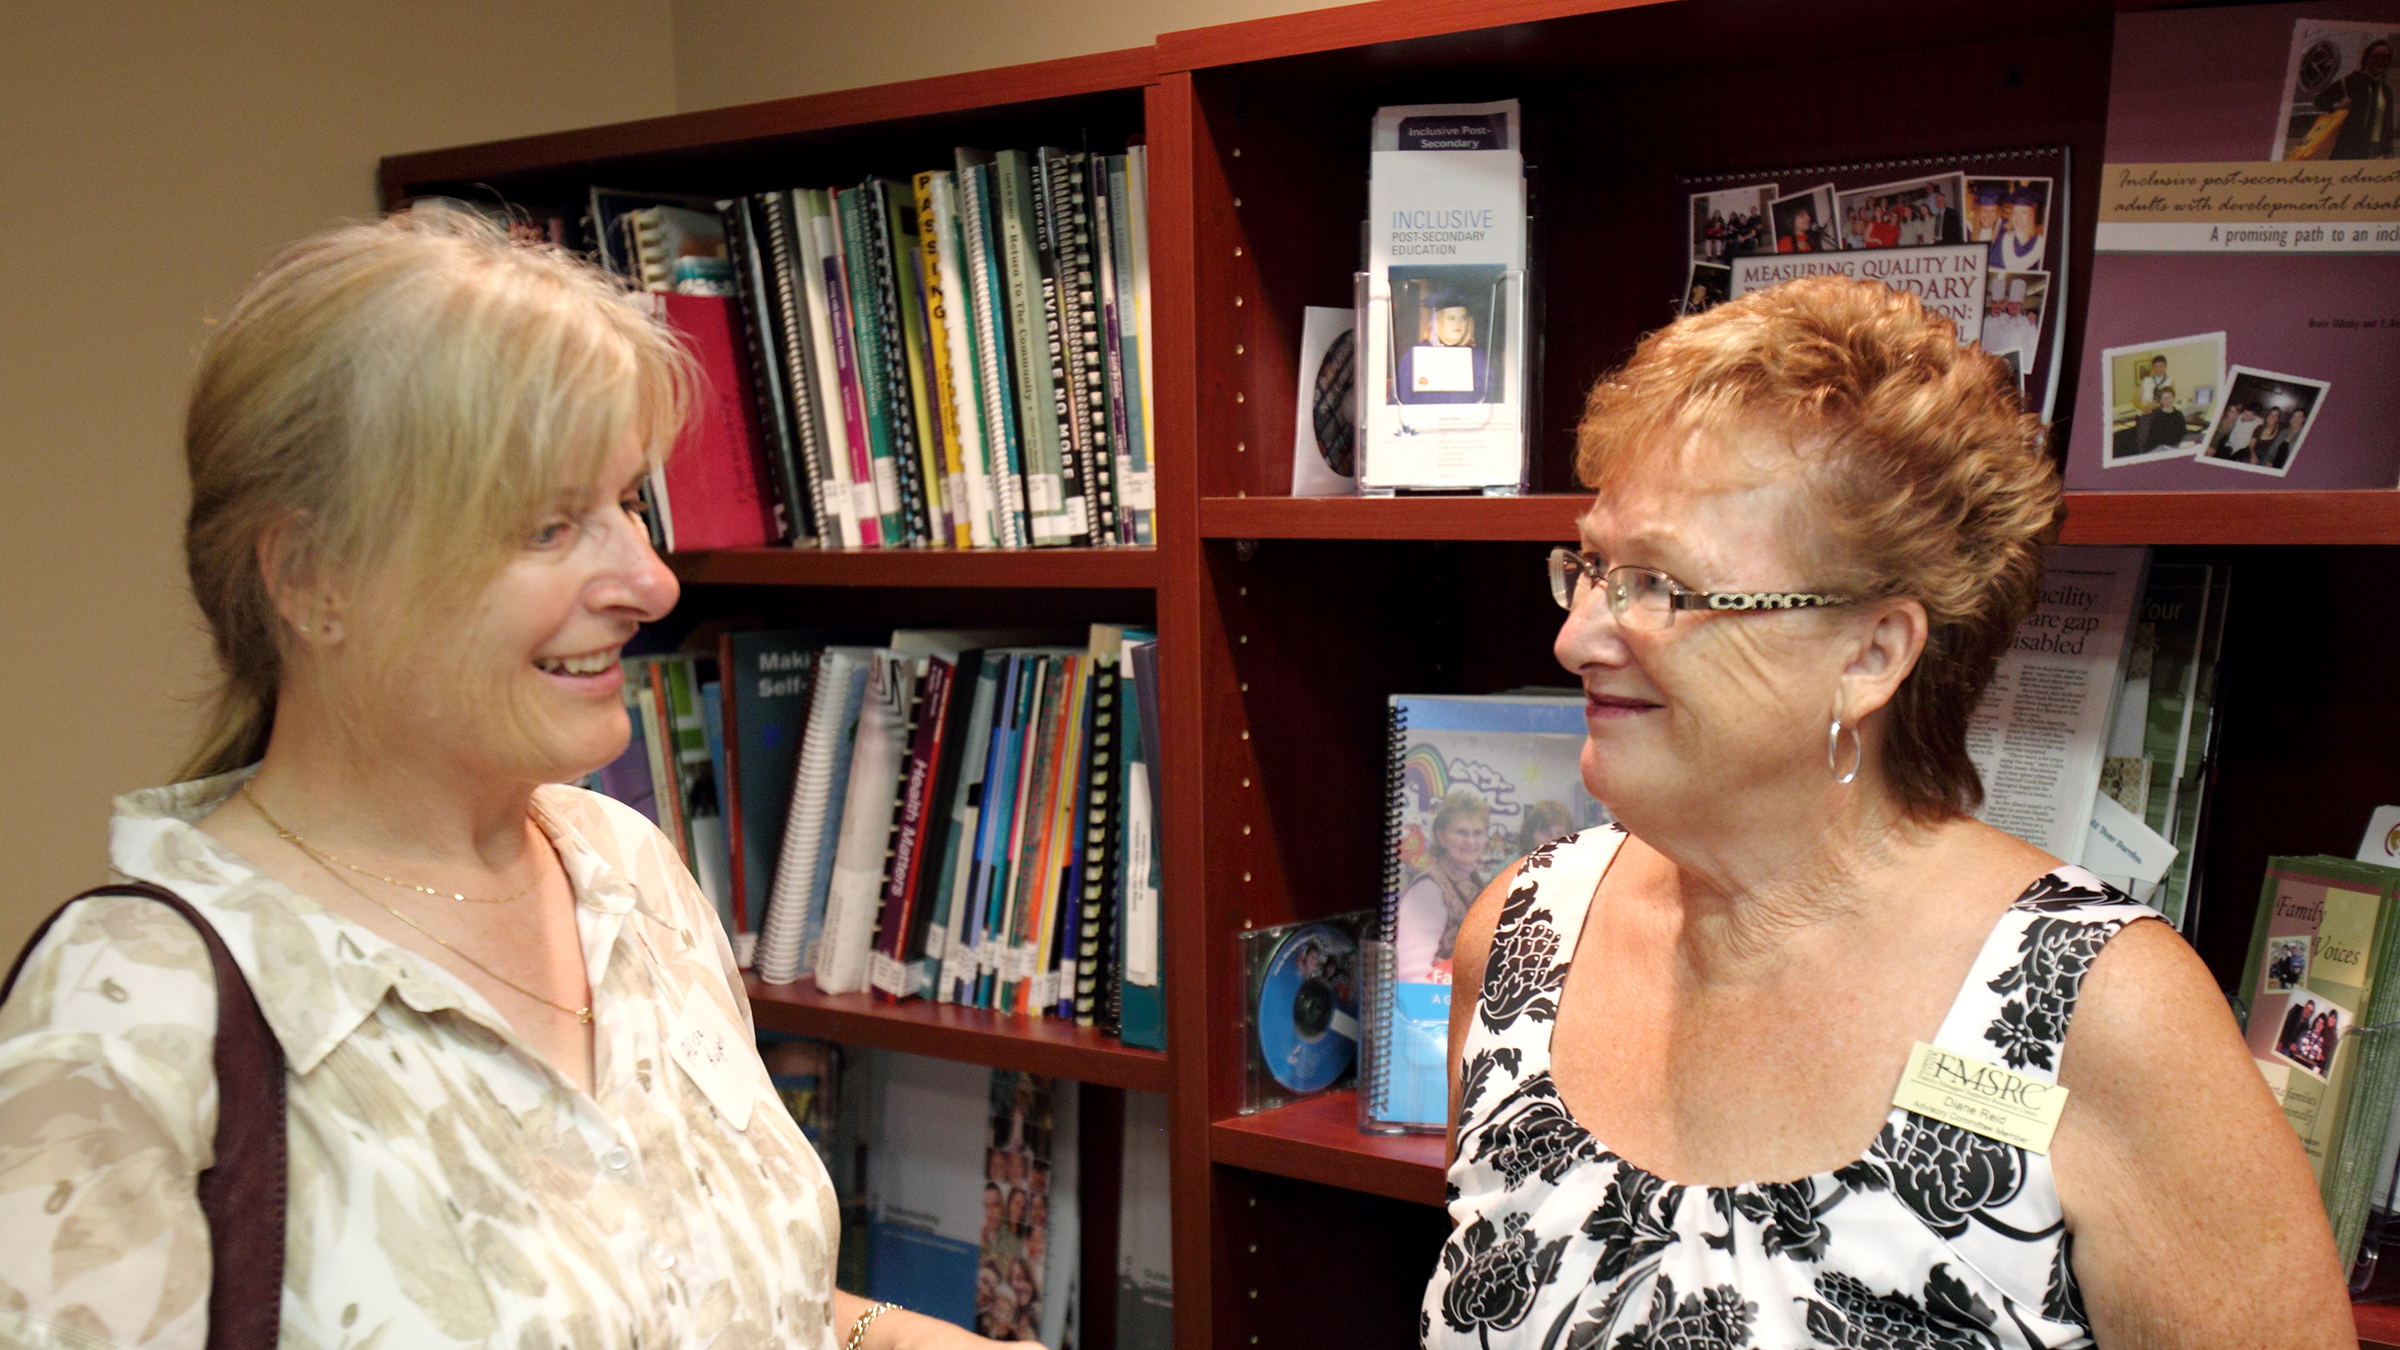 Two women smile while talking in front of full bookshelves